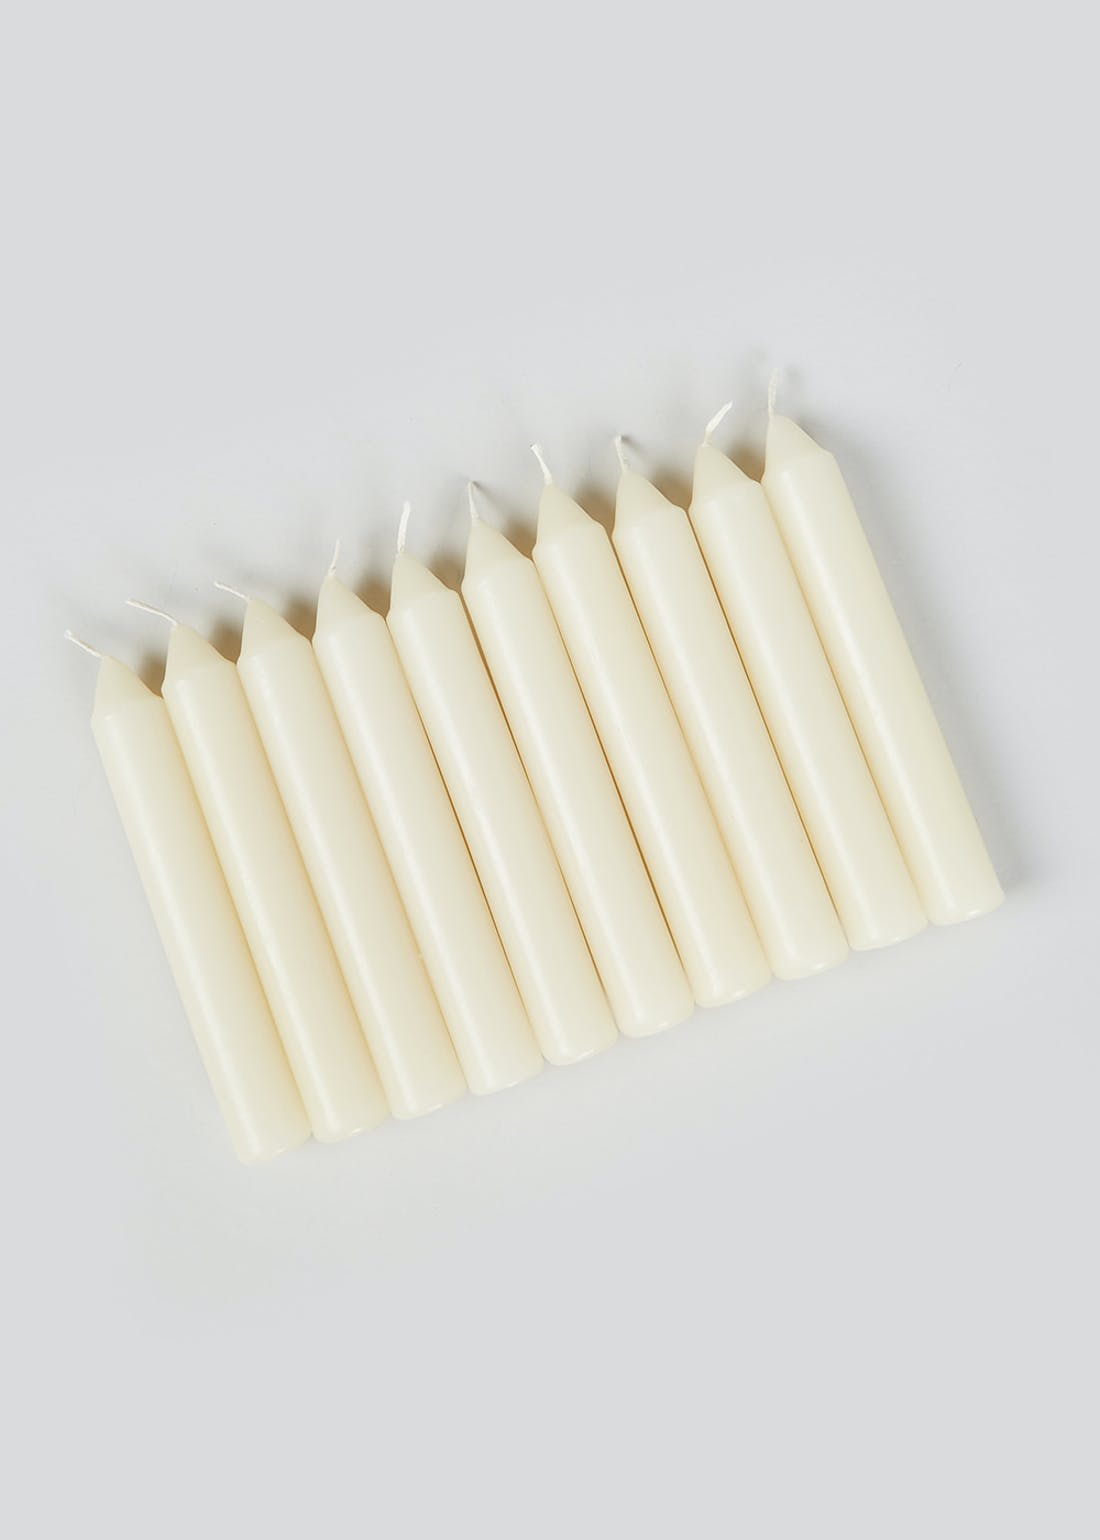 Pack of 10 Dinner Candles (14cm x 2cm)